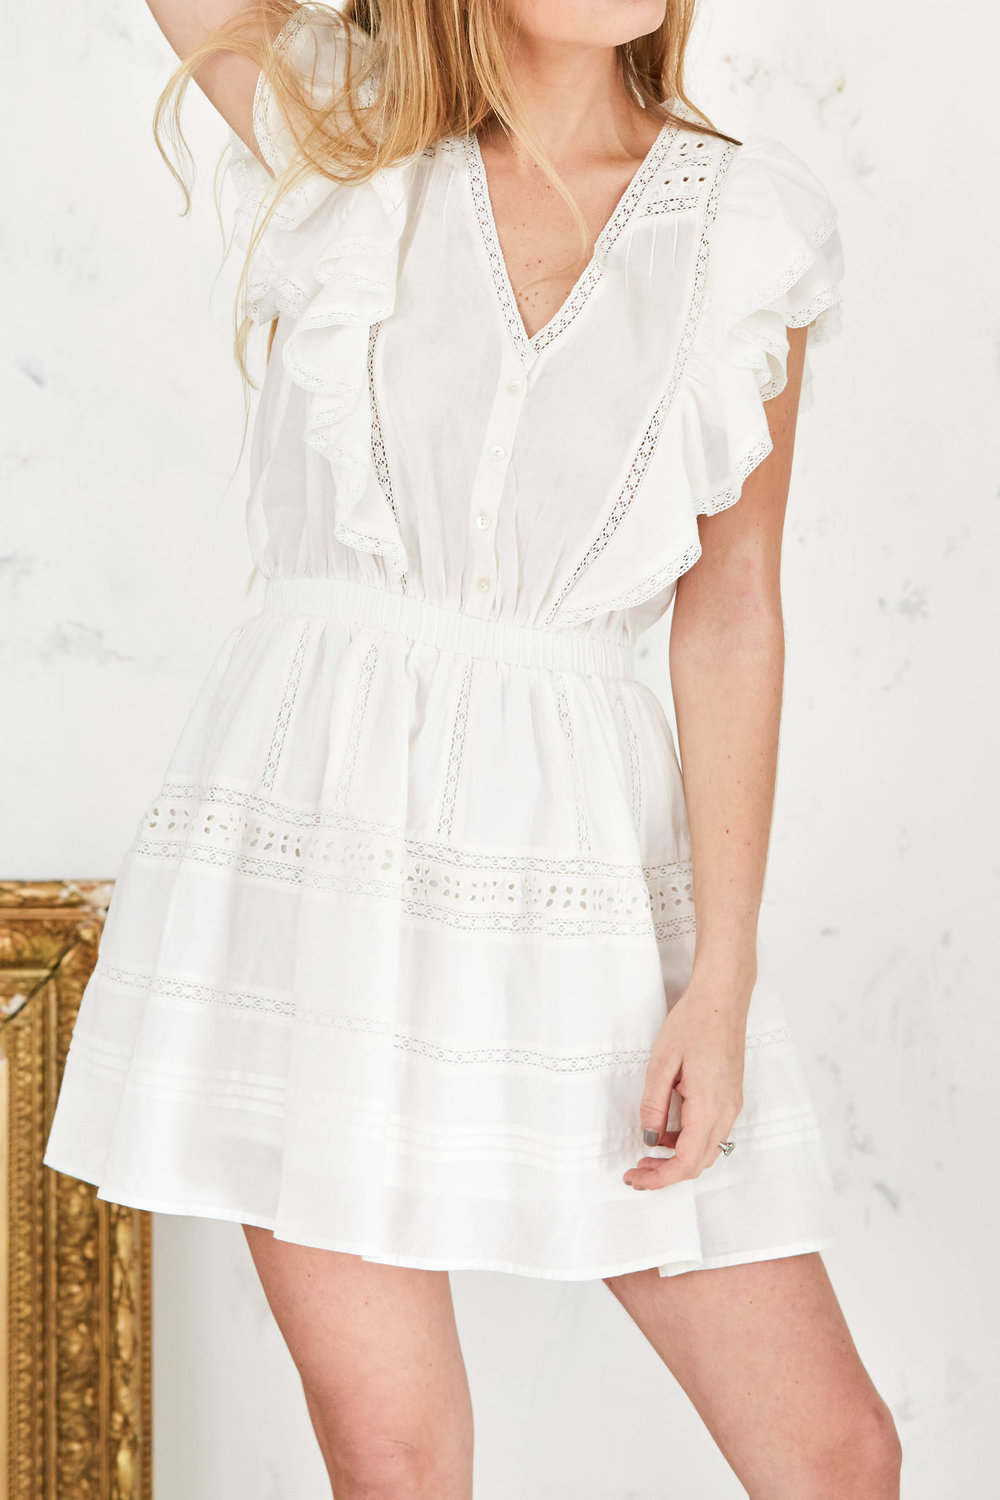 sylvie dress white botanic.jpg